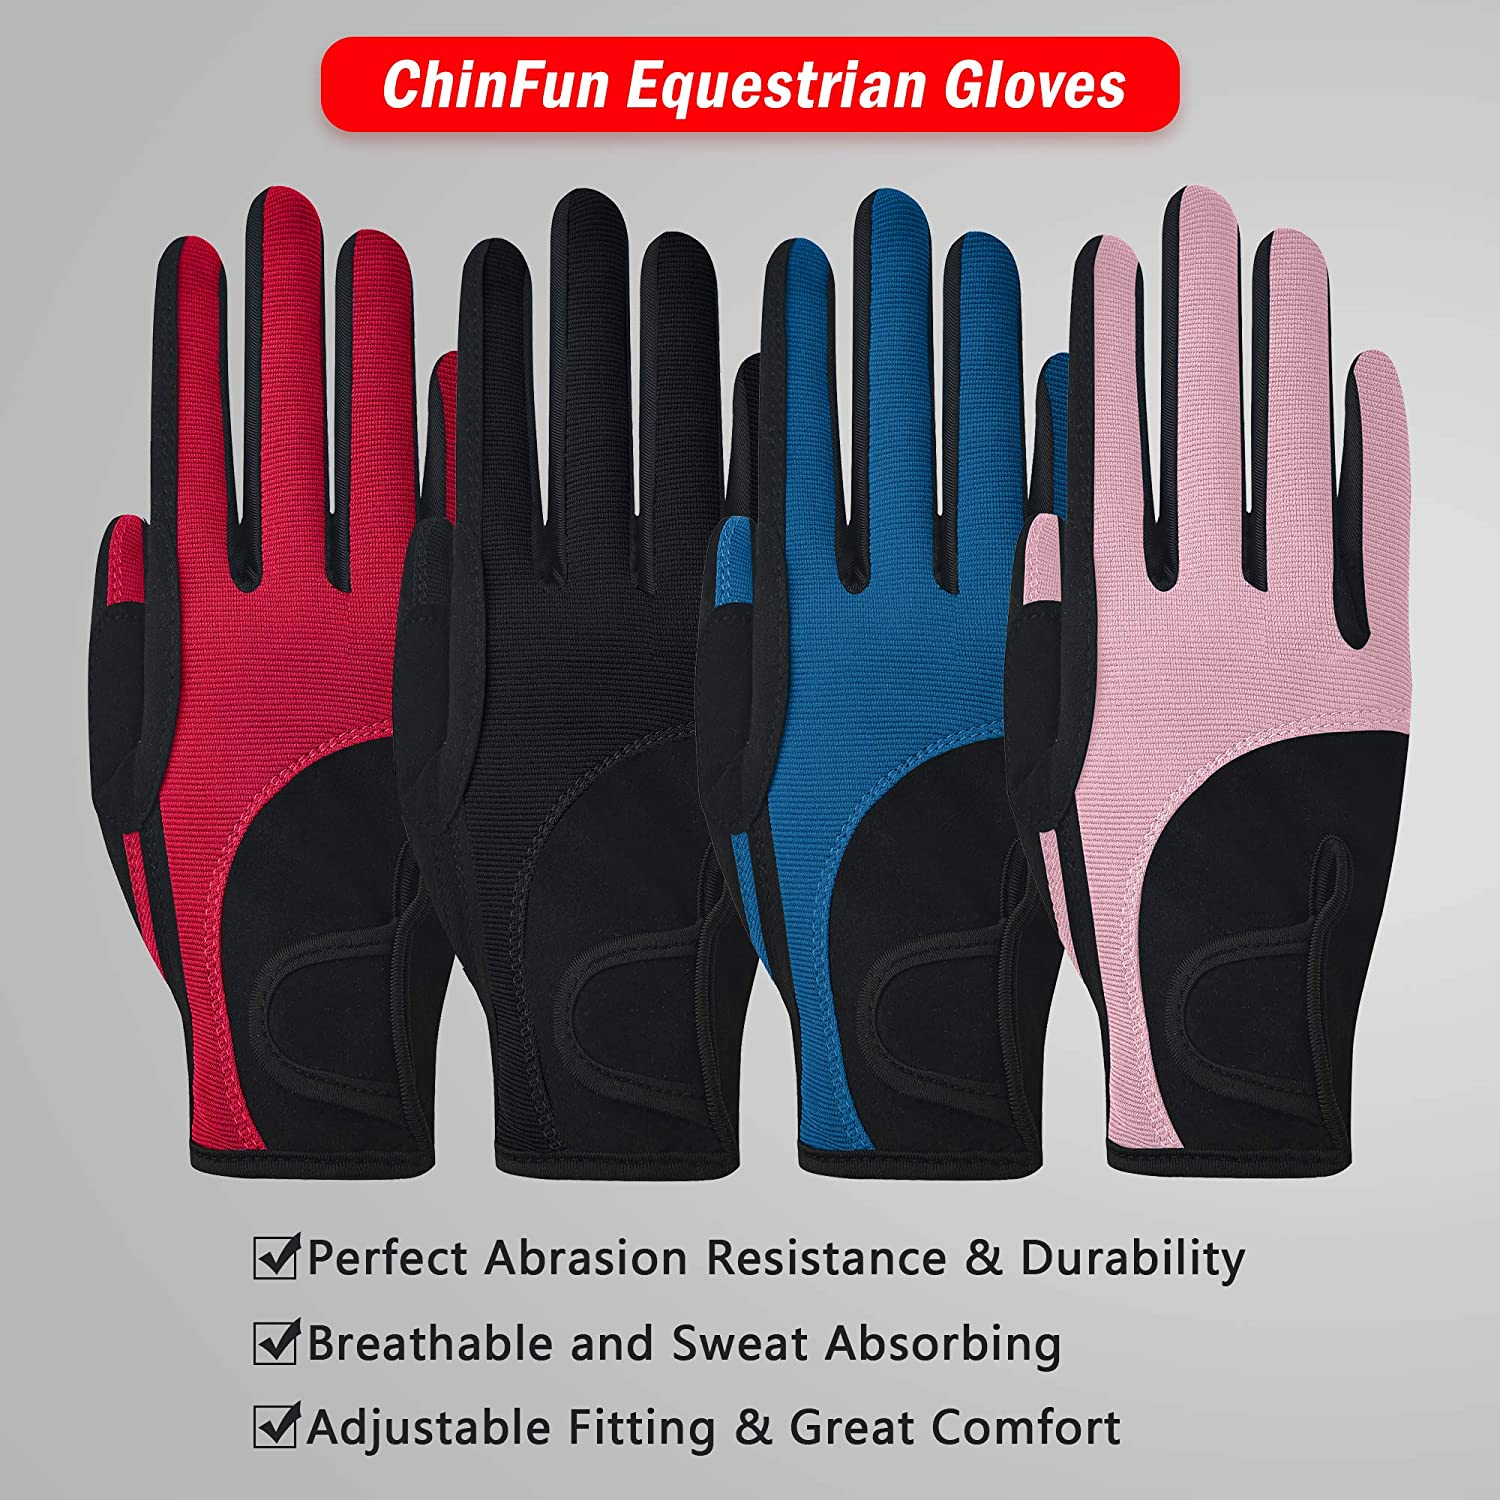 ChinFun Children Equestrian Gloves Color-Contrasted Kids Youth Boys Girls Gloves Shock-Absorbing Winter Riding Cycling Biking Skiing Horse Show Mittens